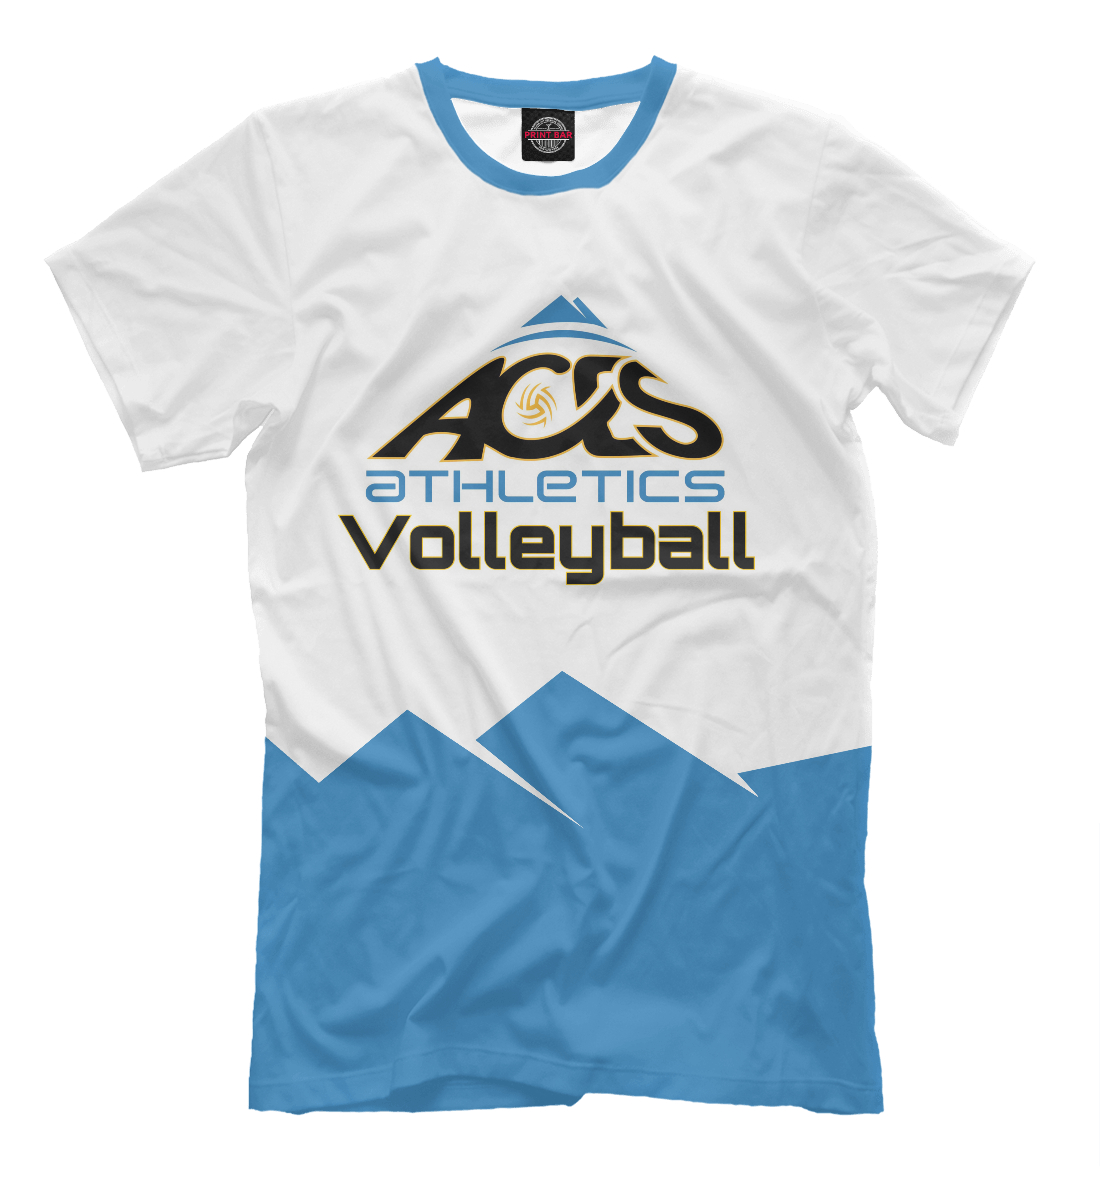 Купить Aces Athletics volleyball, Printbar, Футболки, VLB-299450-fut-2